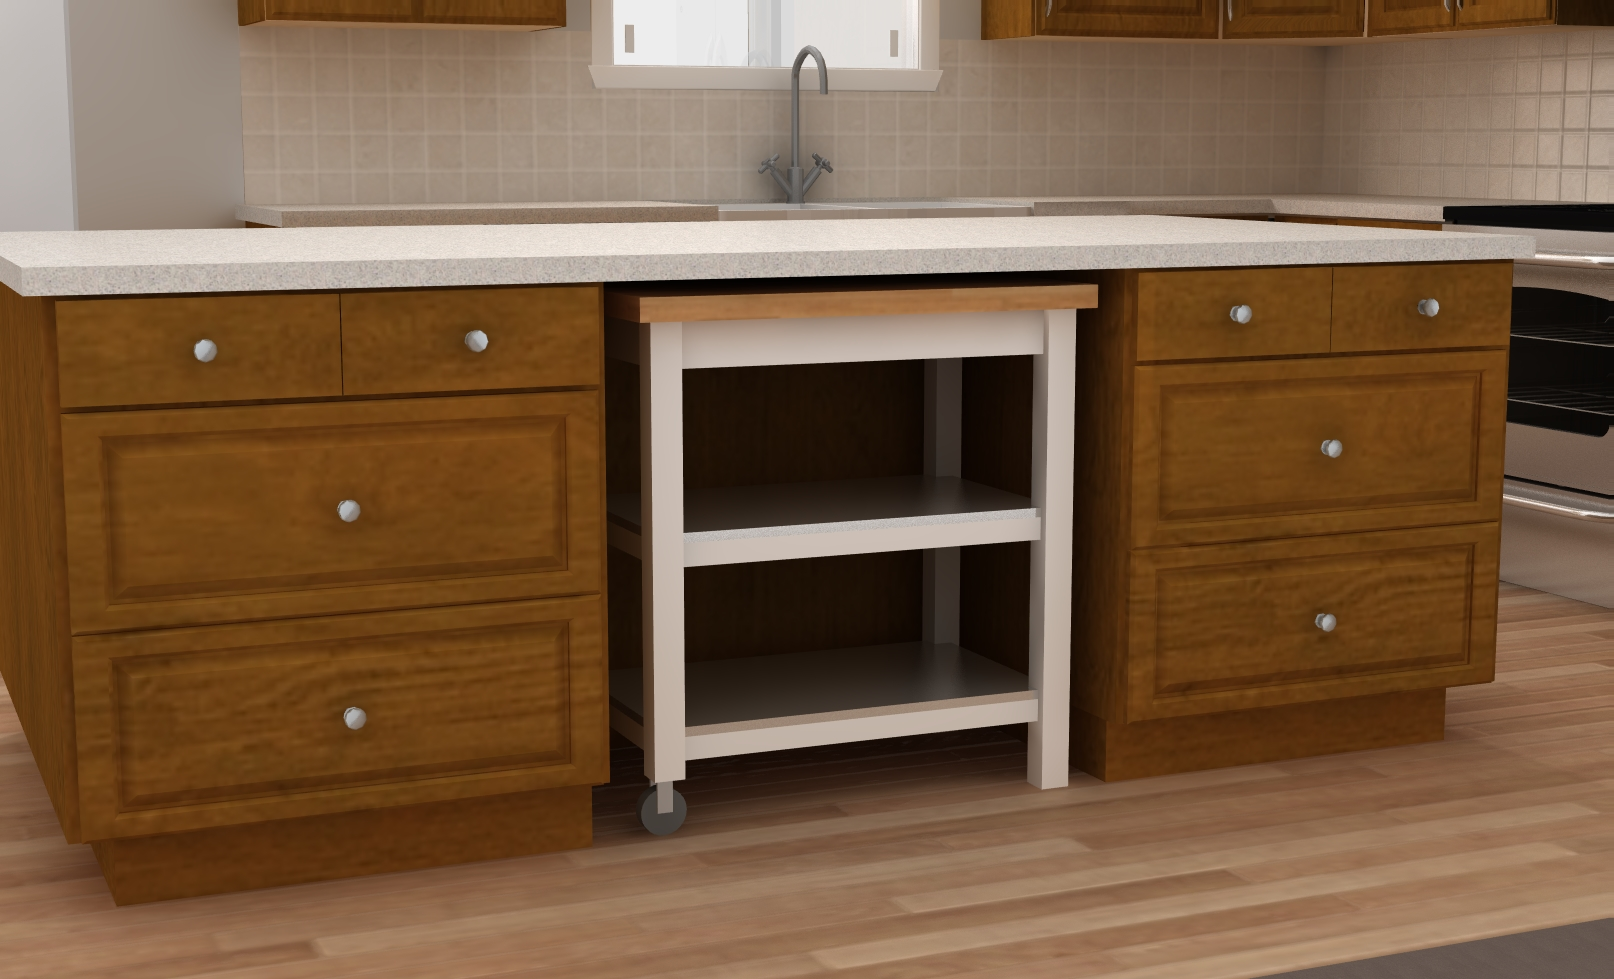 ikea butcher block kitchen cart trend home design and decor kitchen island units second hand kitchen furniture buy